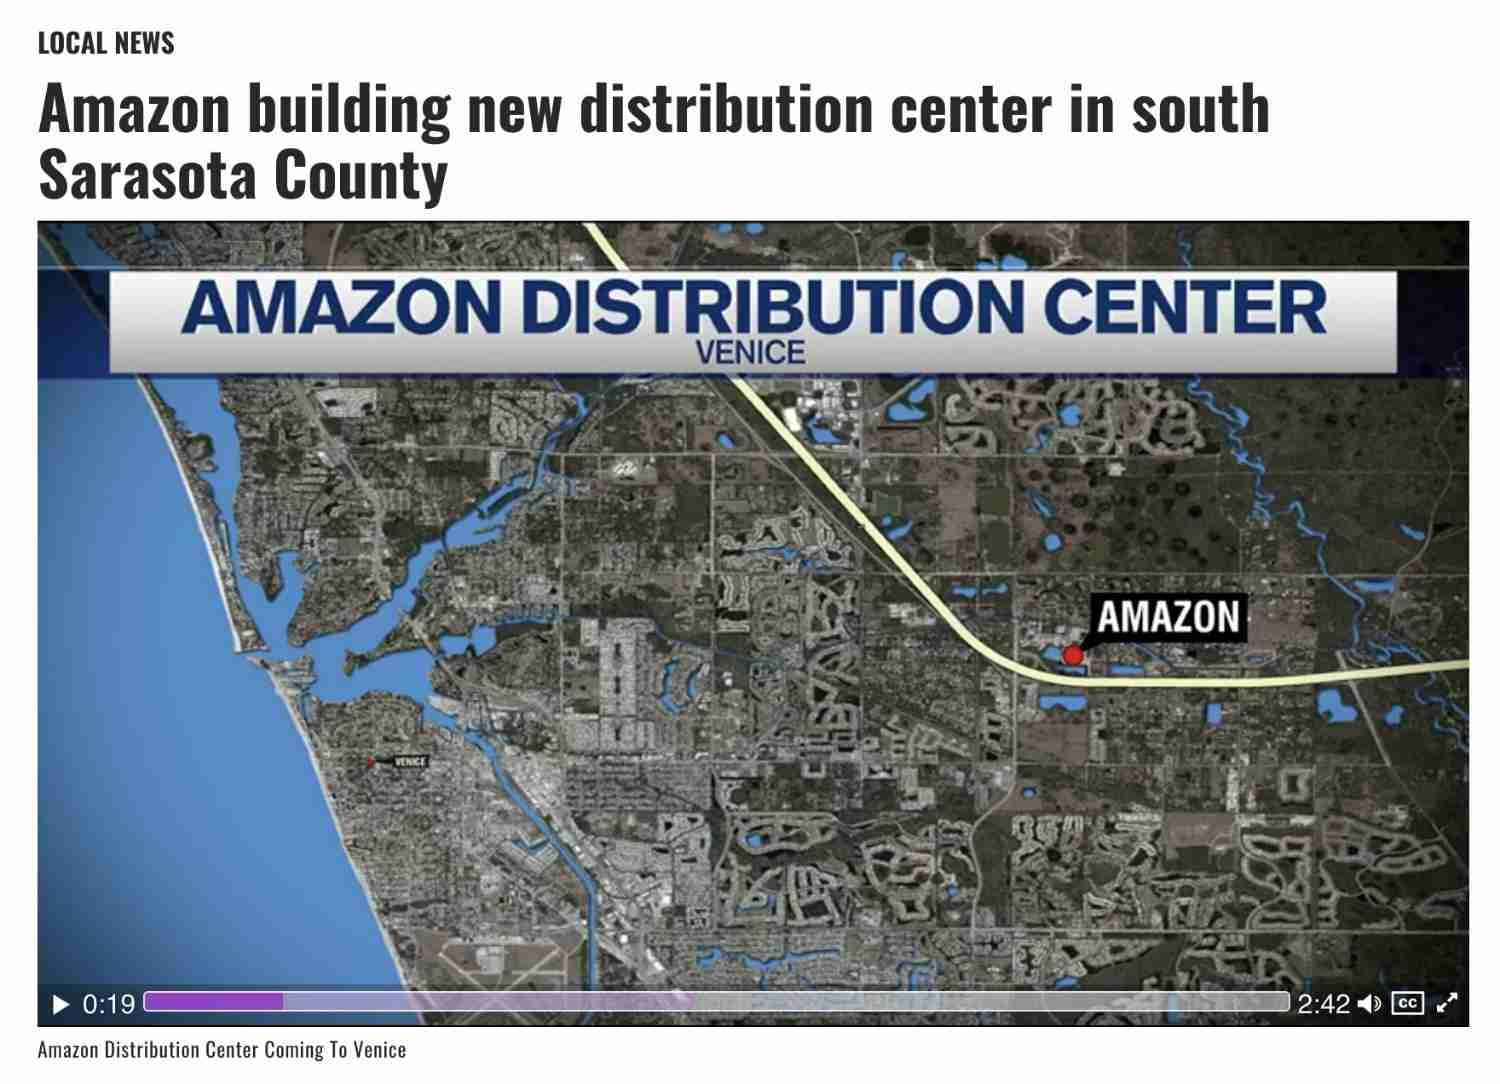 screenshot of local news reporting on Amazon's new distribution center coming to Venice Florida